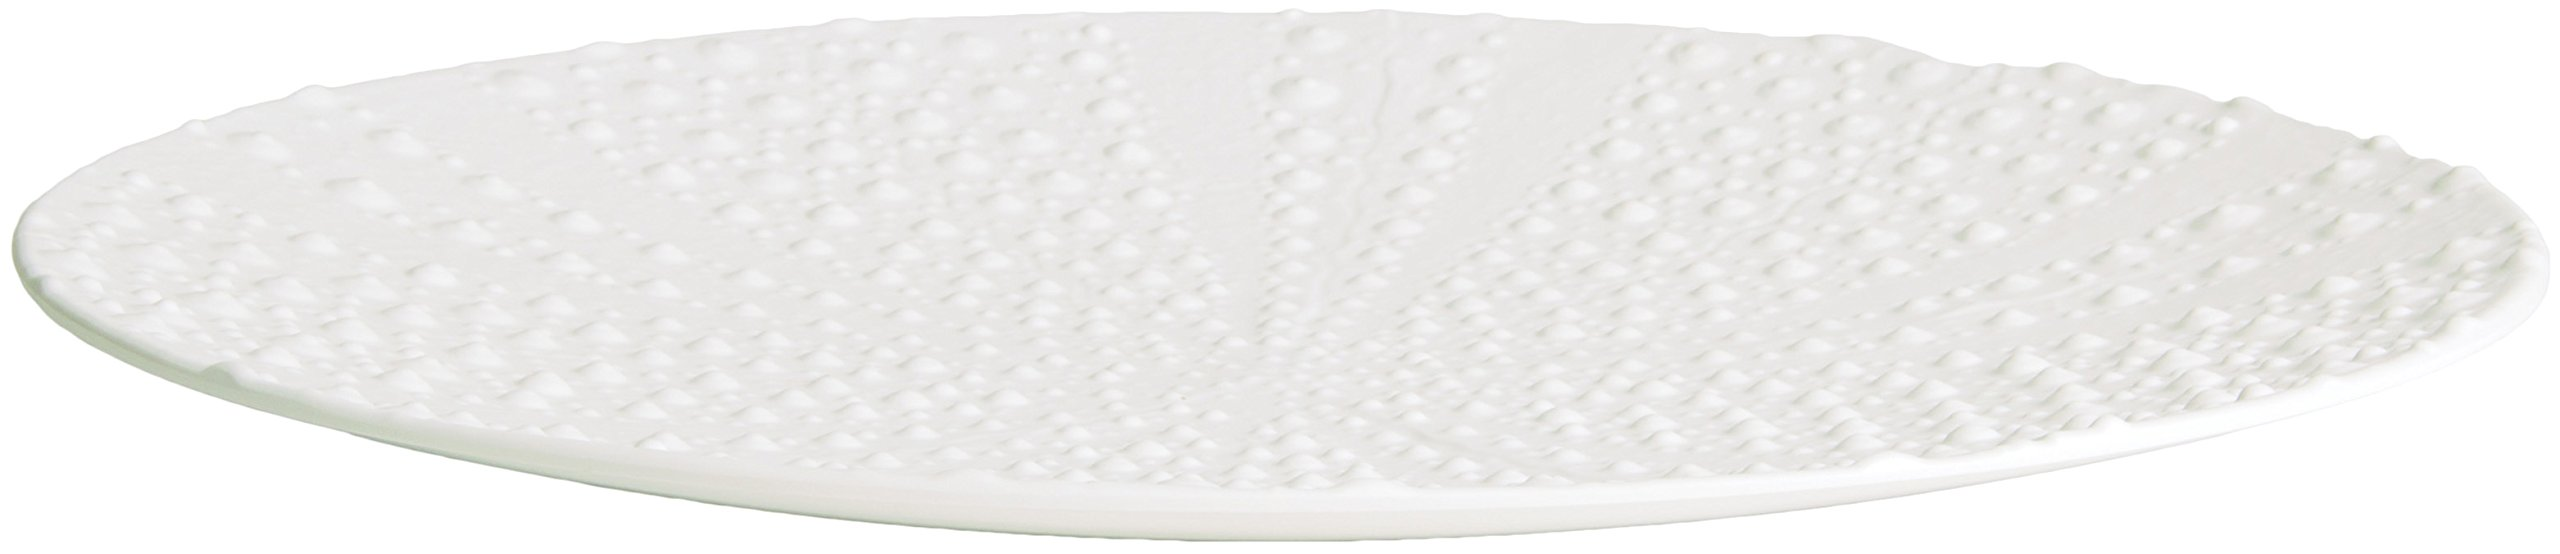 Madhouse by Michael Aram Melamine Sea Urchin Serving Platter, Large, Ocean